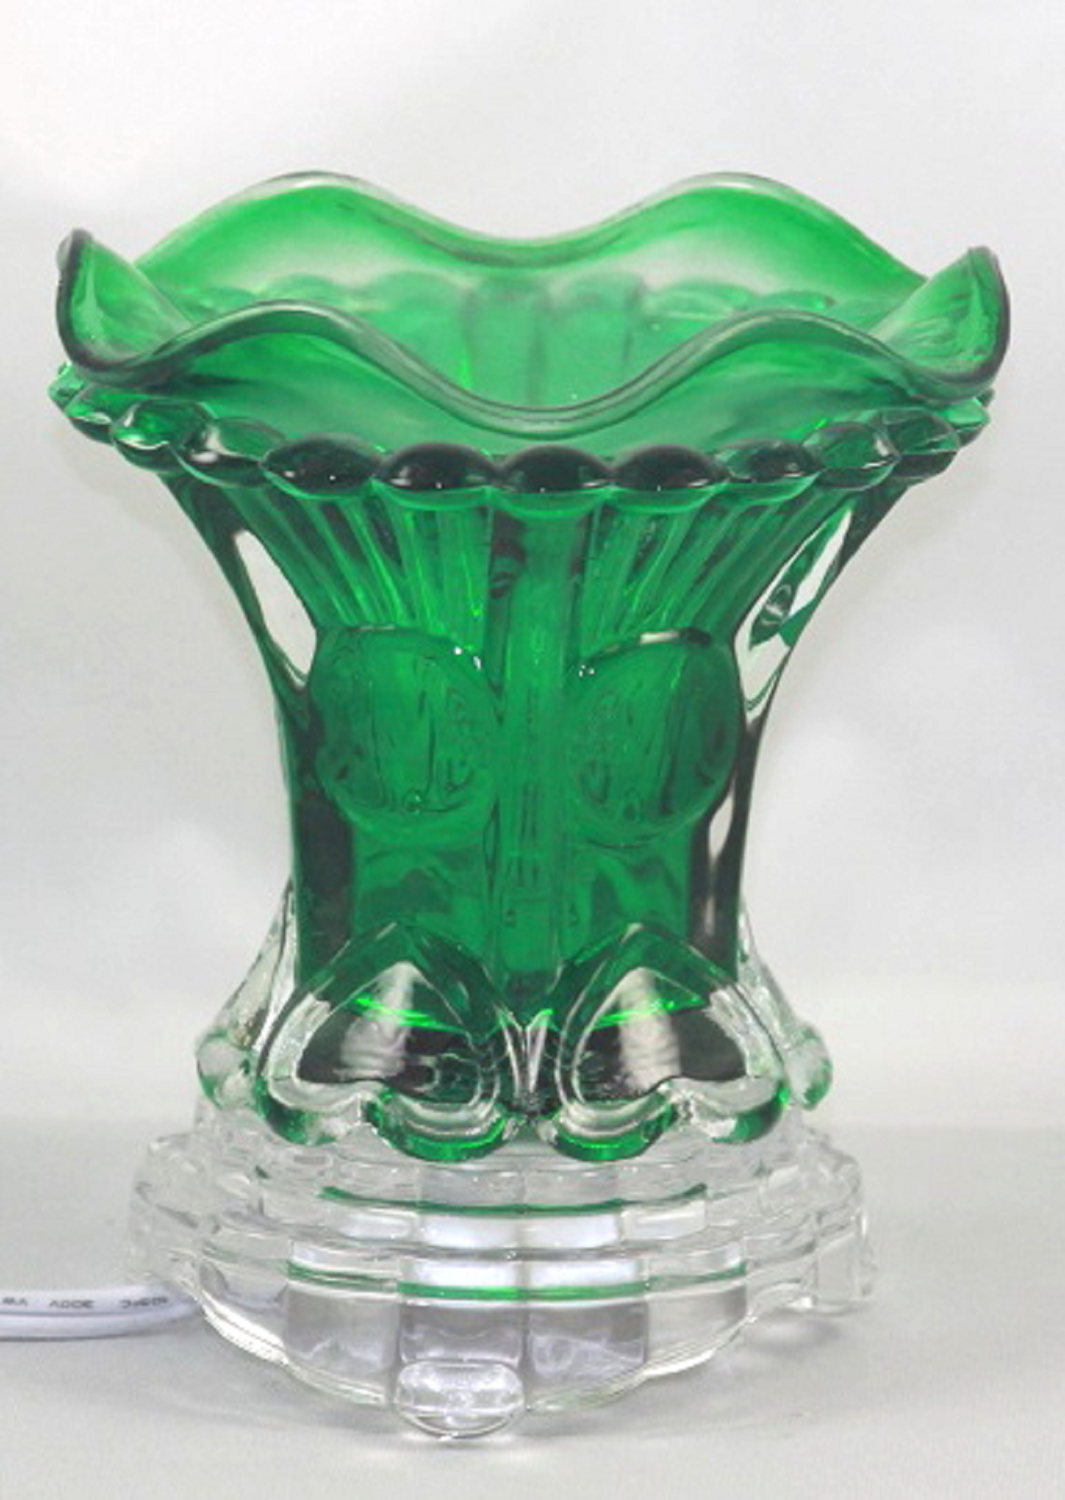 GREEN HEART ELECTRIC AROMATHERAPY FRAGRANCE OIL BURNER